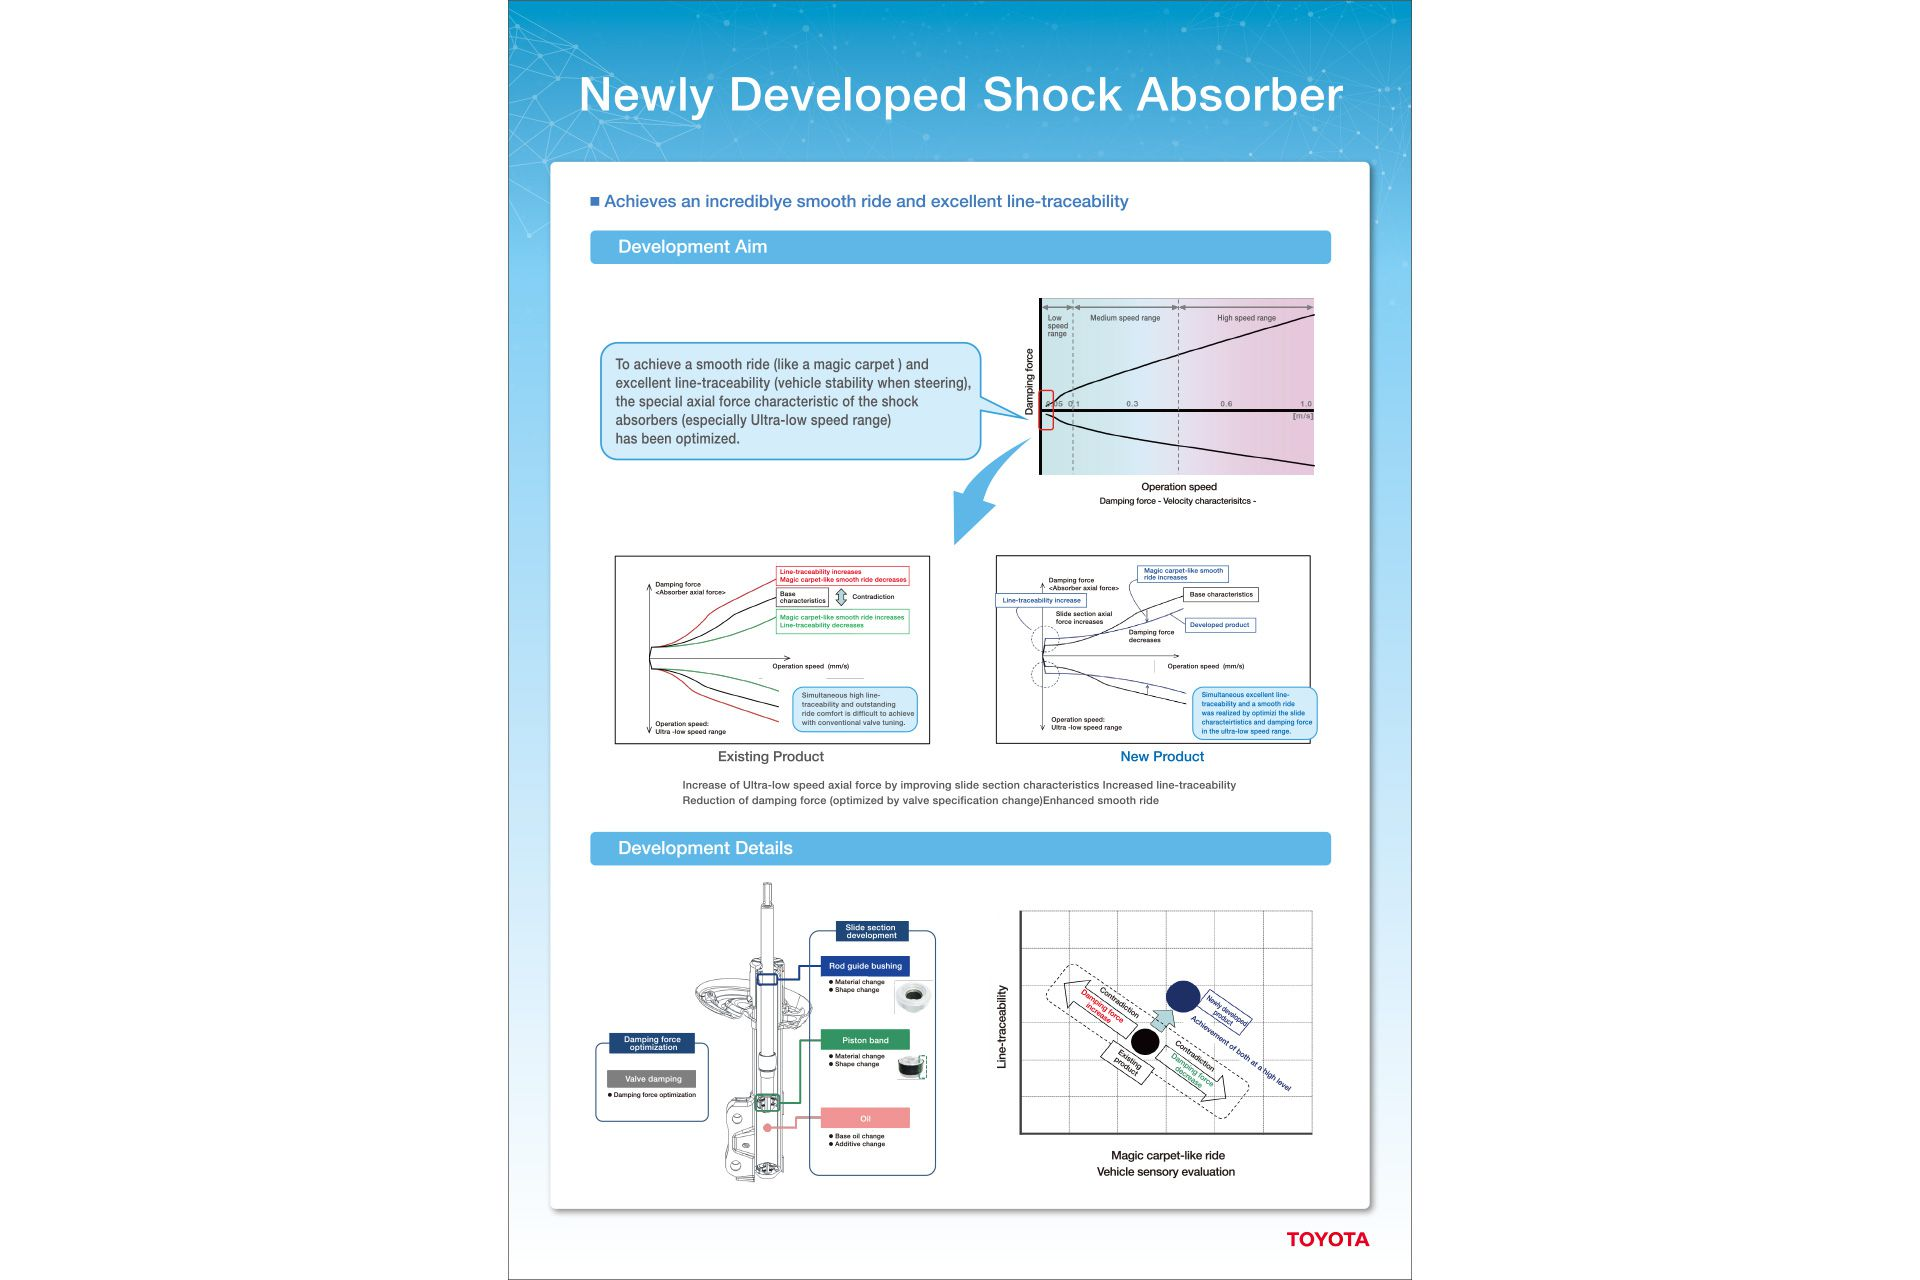 Newly Developed Shock Absorber